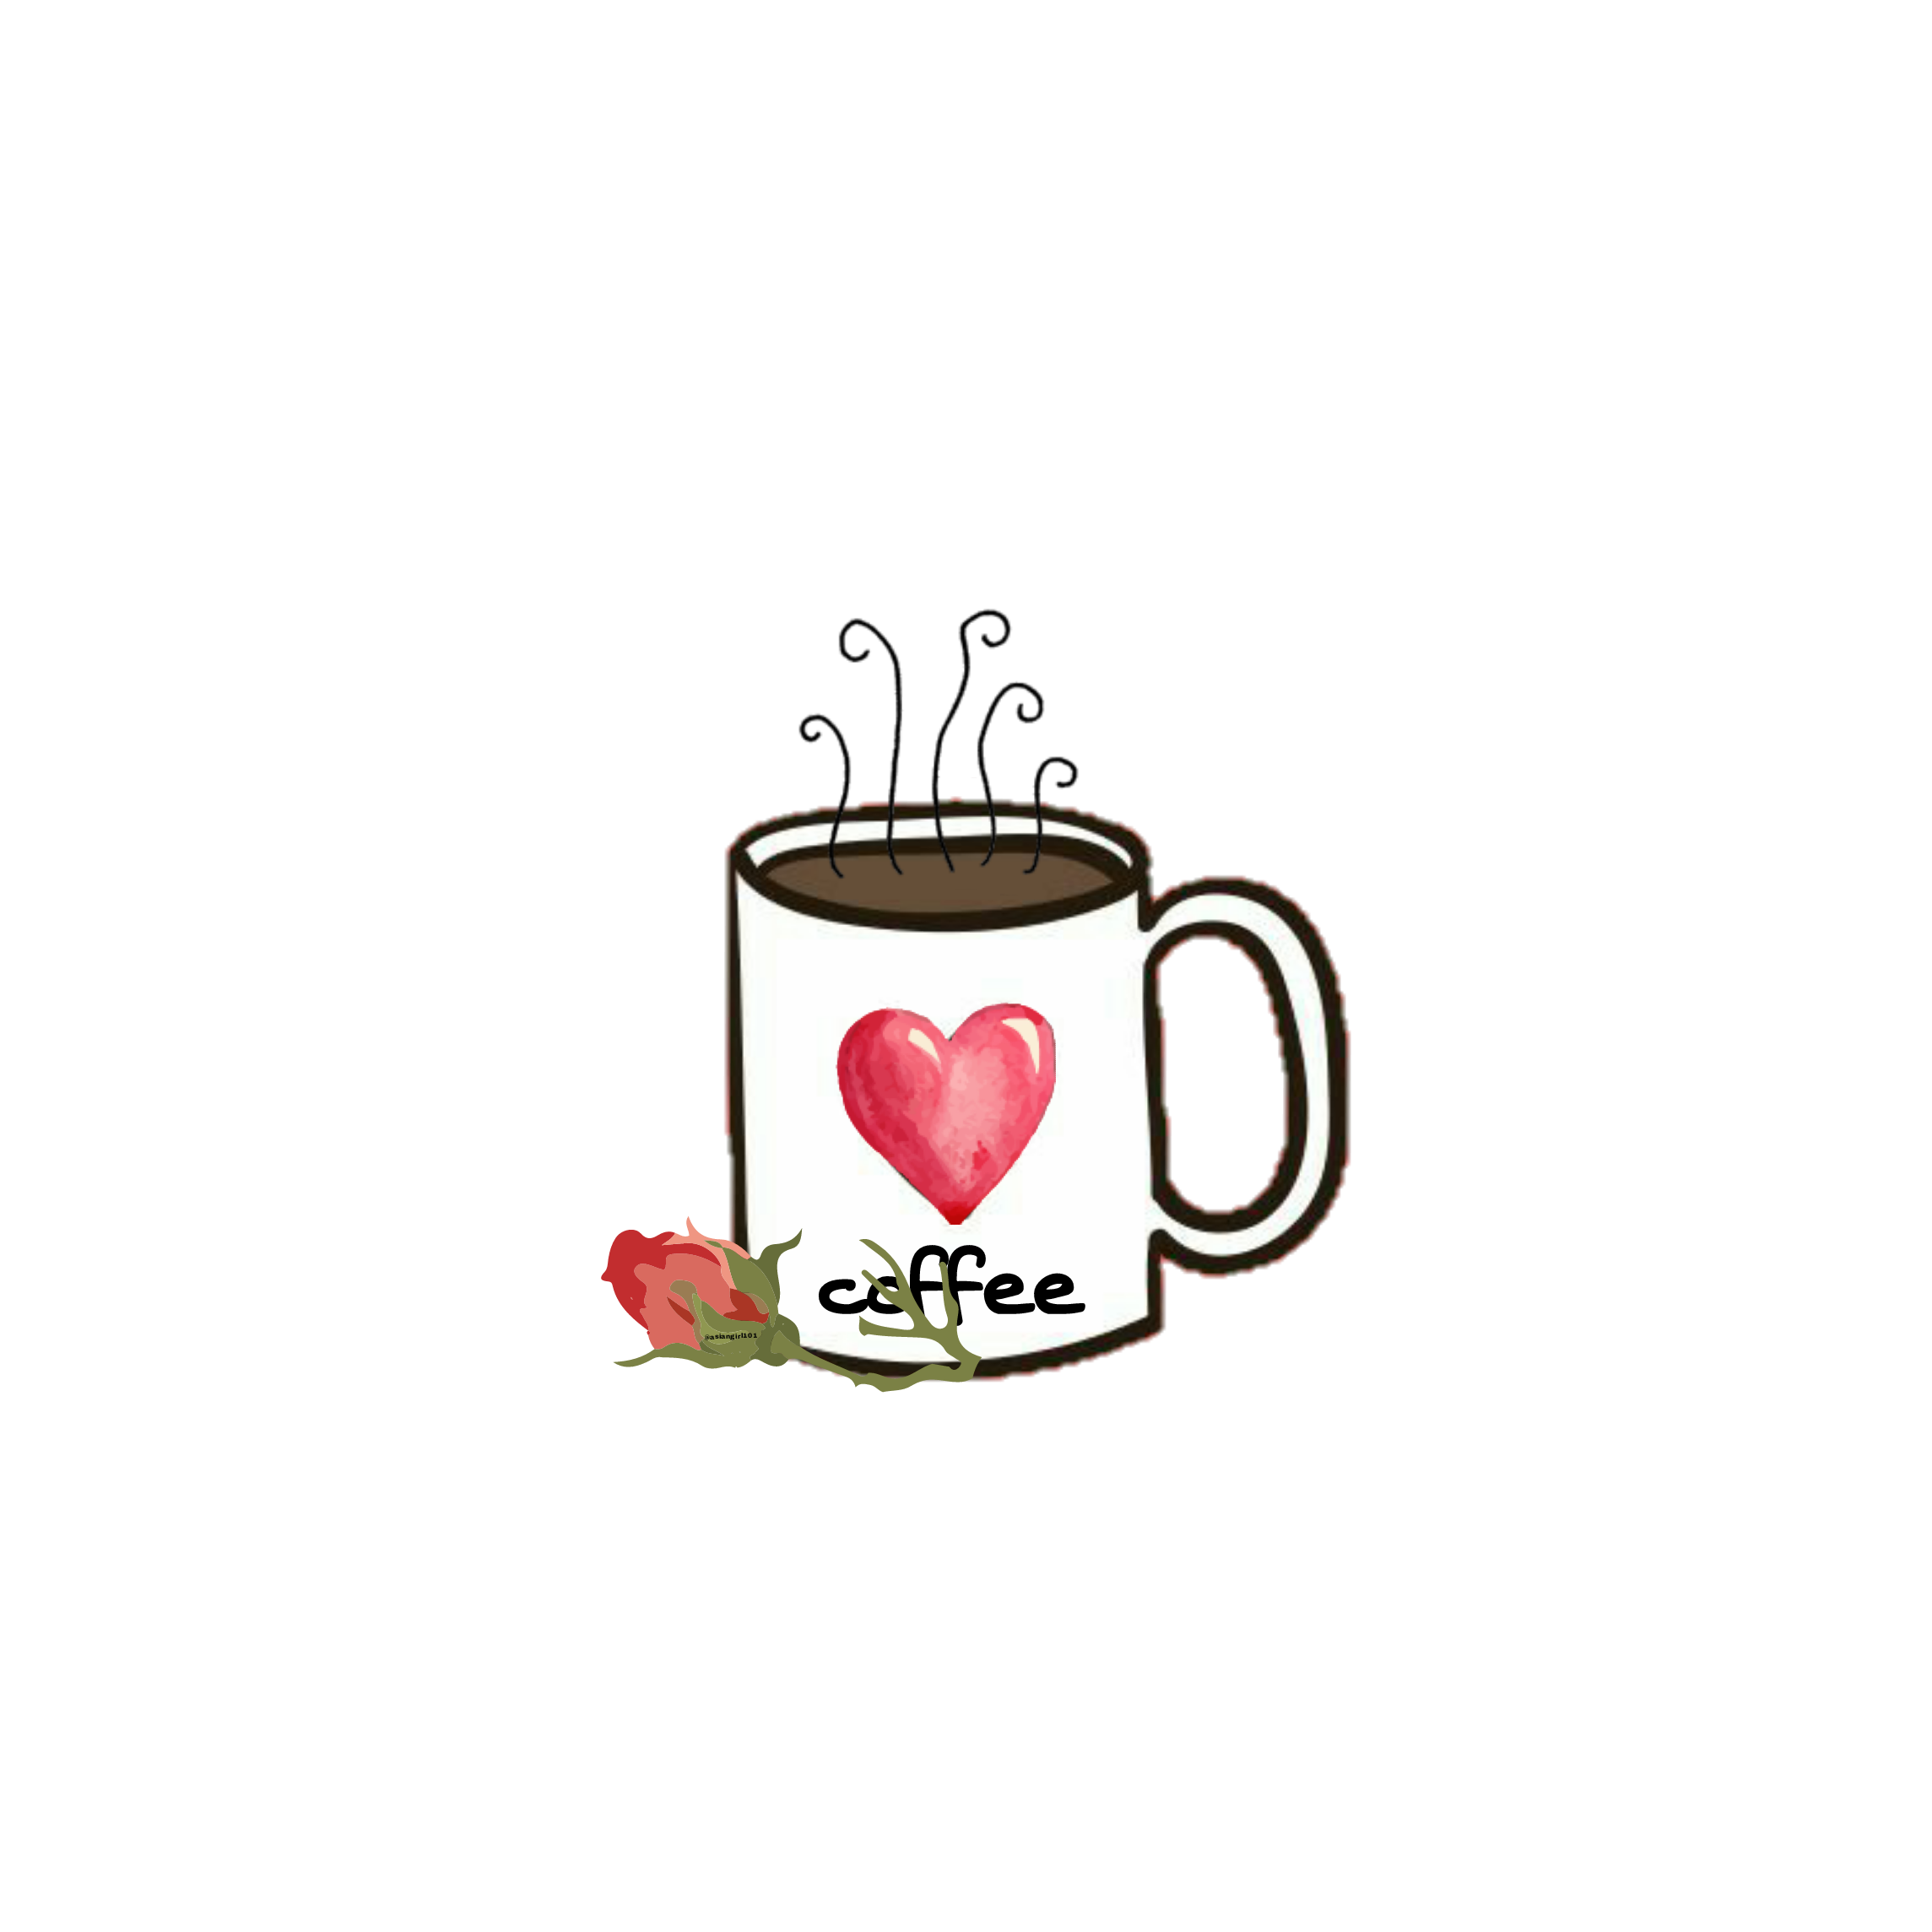 Pin By Adriana Rosa On Morning Picsart Stickers Coffee Art Coffee Wallpaper Stickers